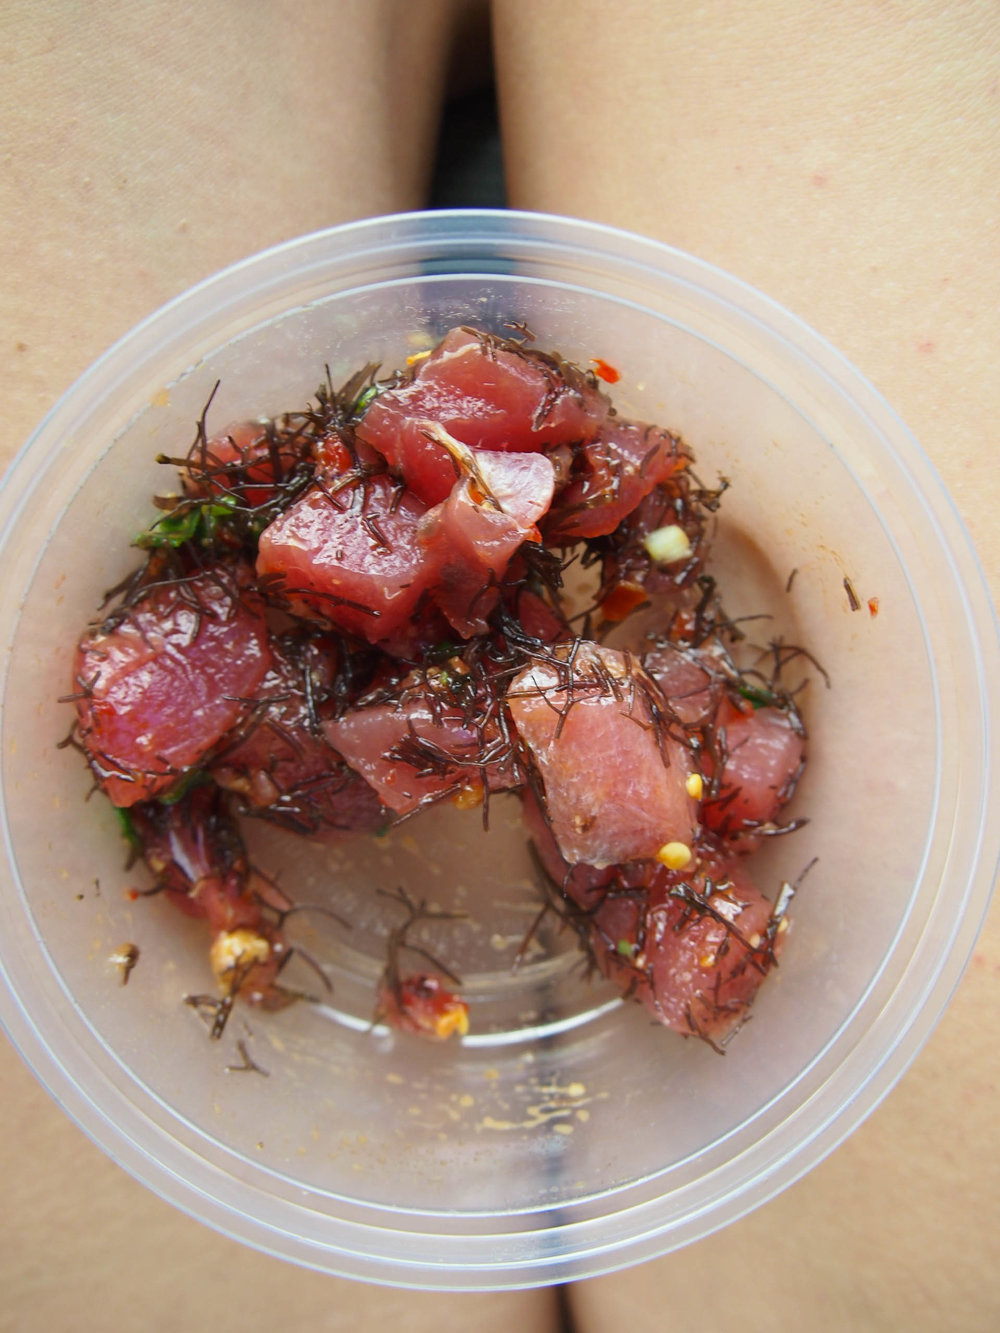 ahi poke from Fish Express on Kauai